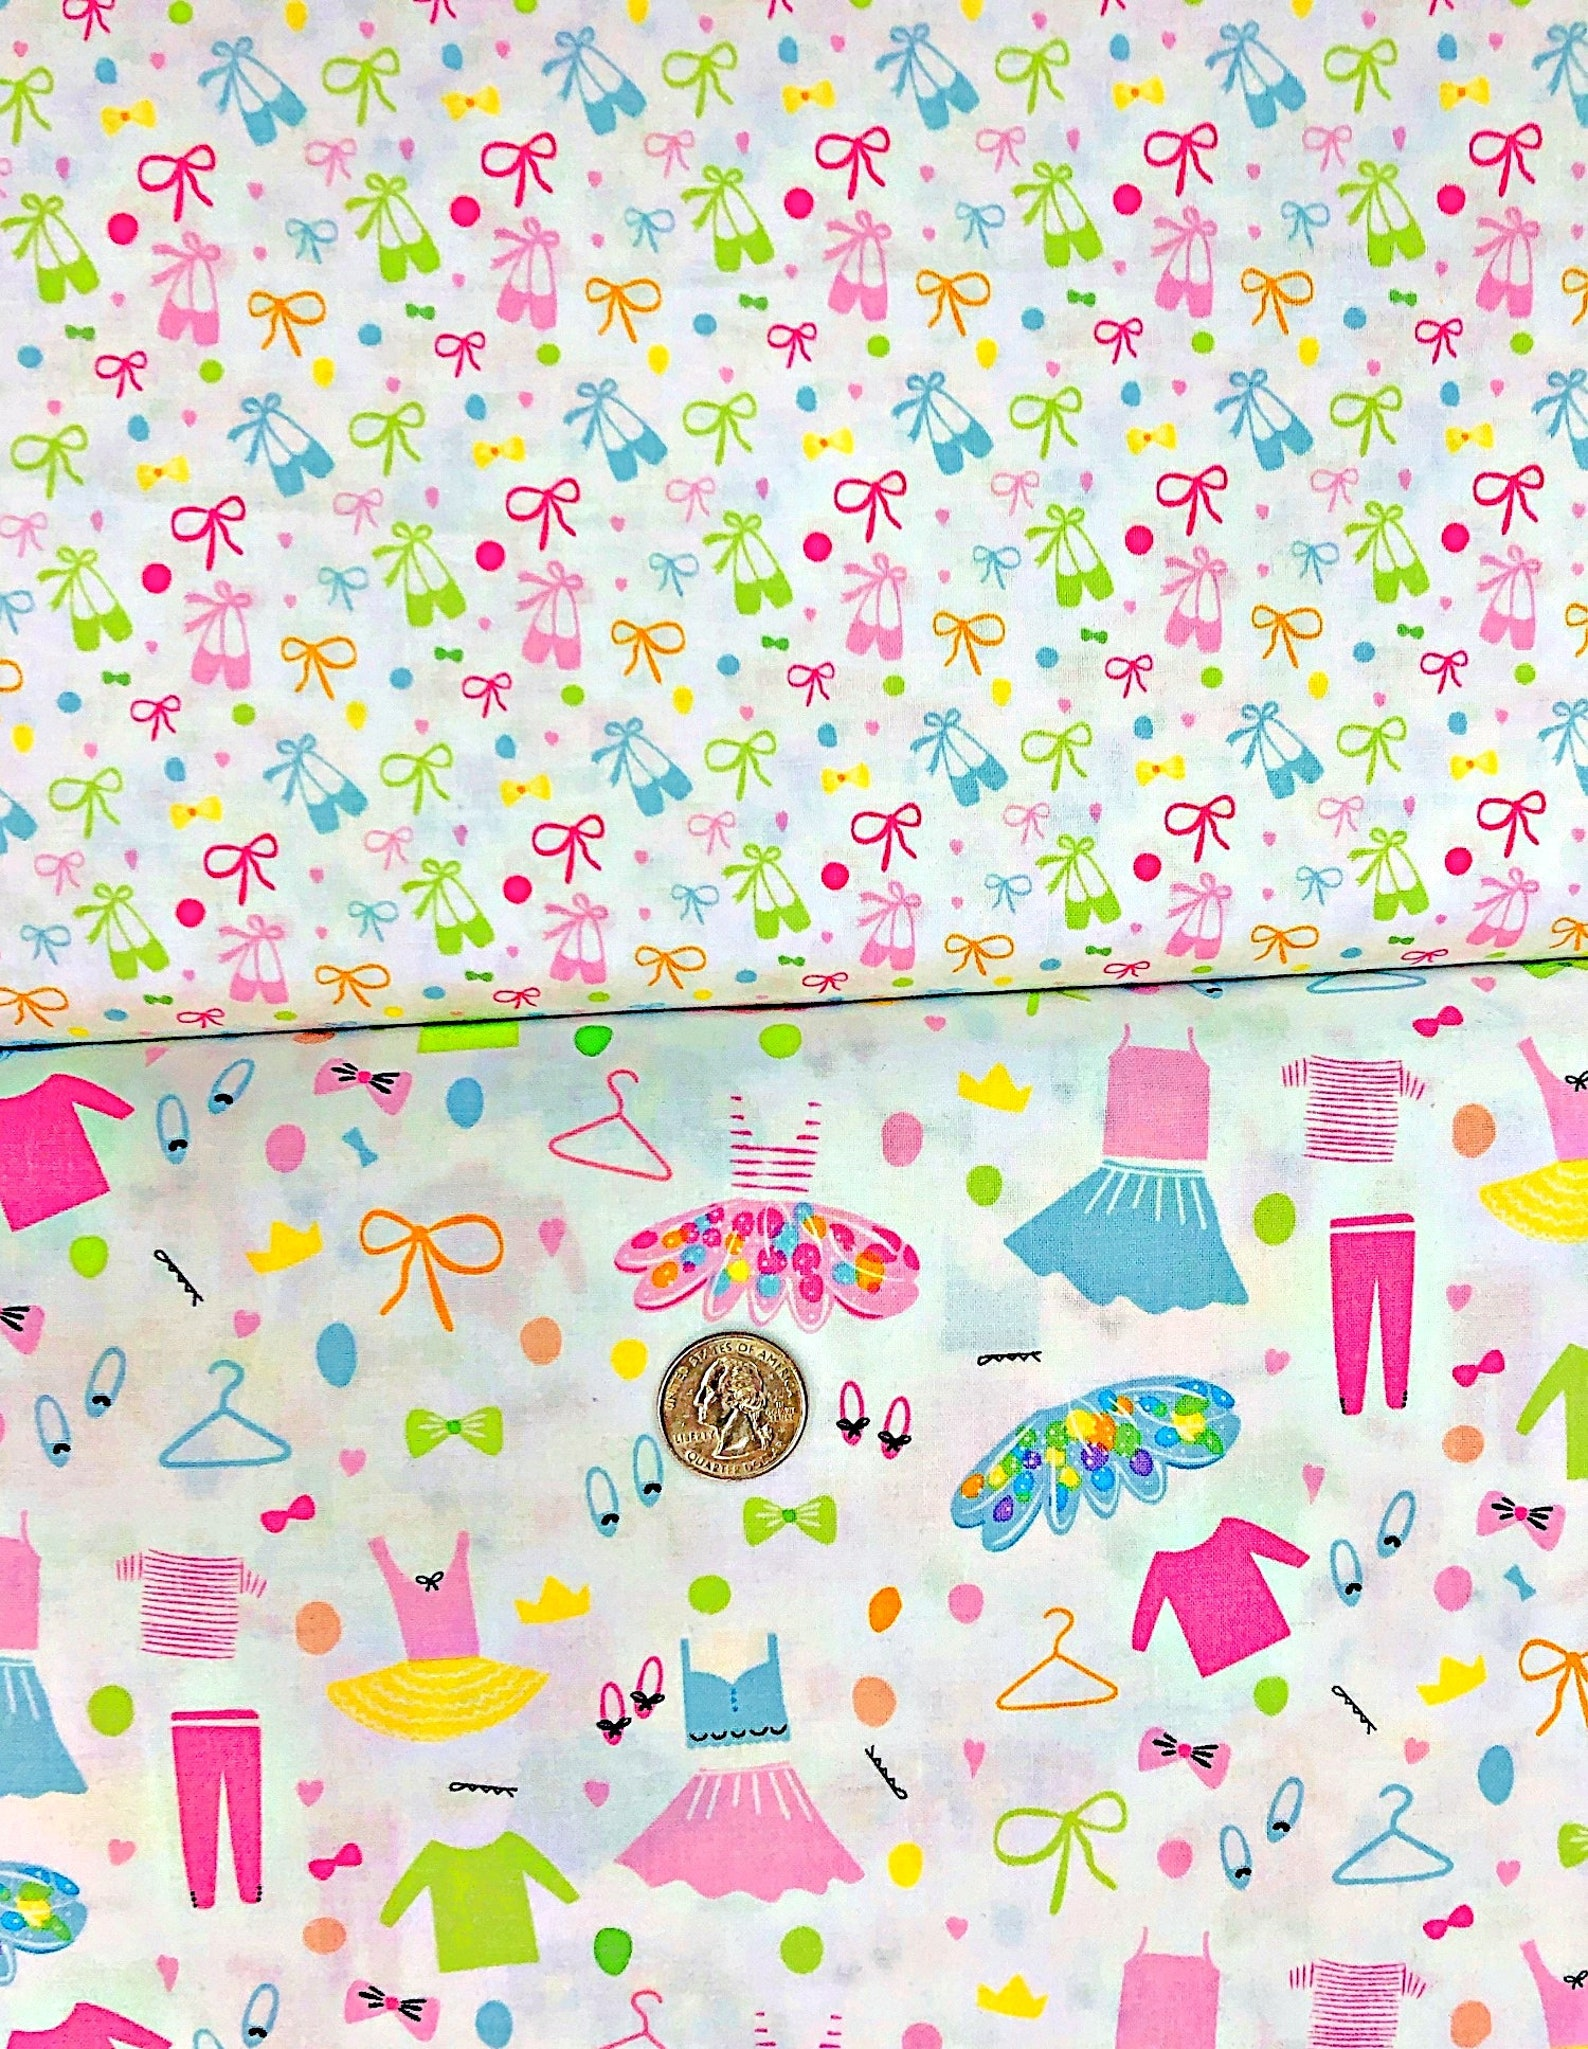 riley blake - c6953 - ballerina bows - ballet shoes and bows on white - one yard of fabric. by the yard